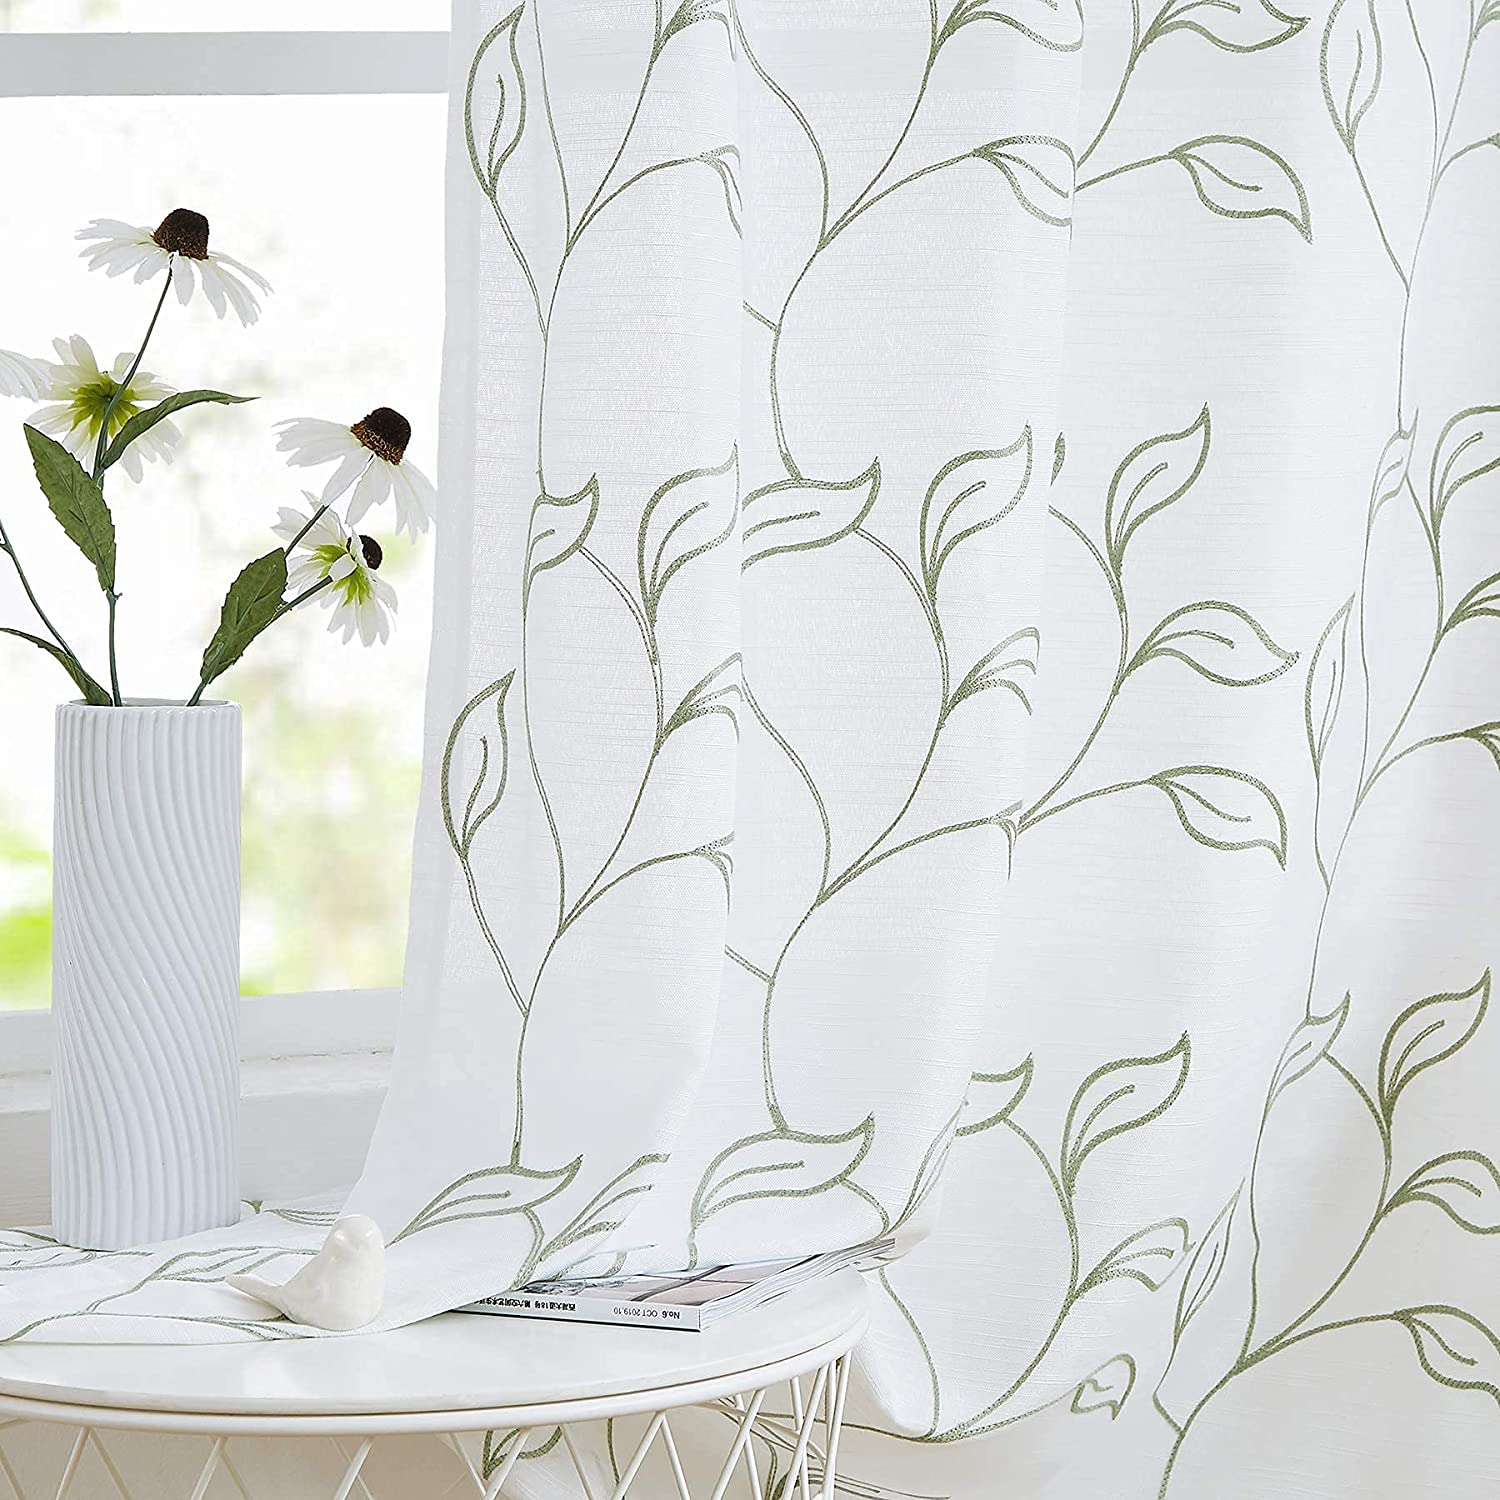 Green White Embroidery Large-scale sale Max 61% OFF Sheer Curtains 84